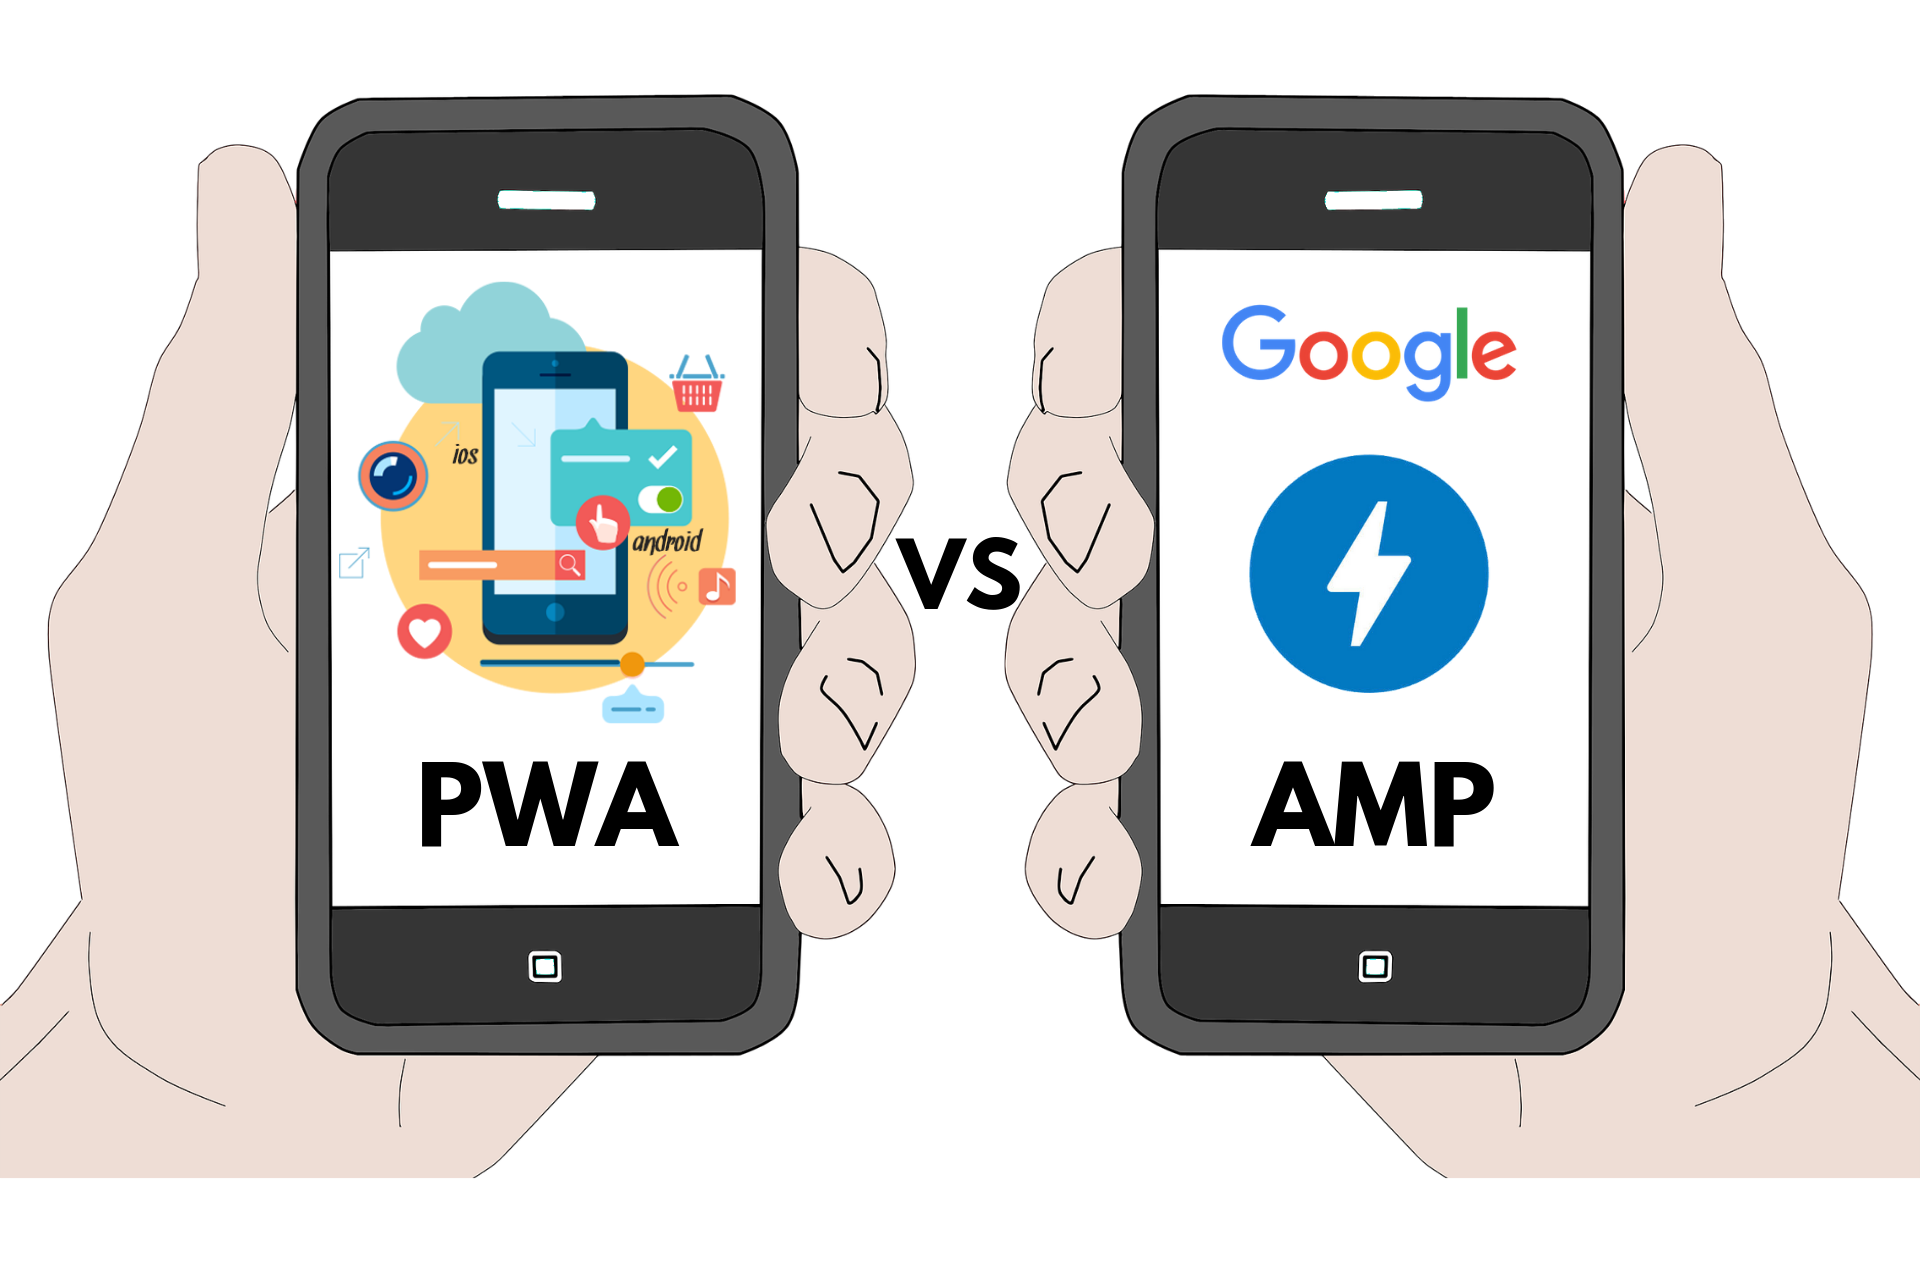 PWA and AMP are two different technologies having the same